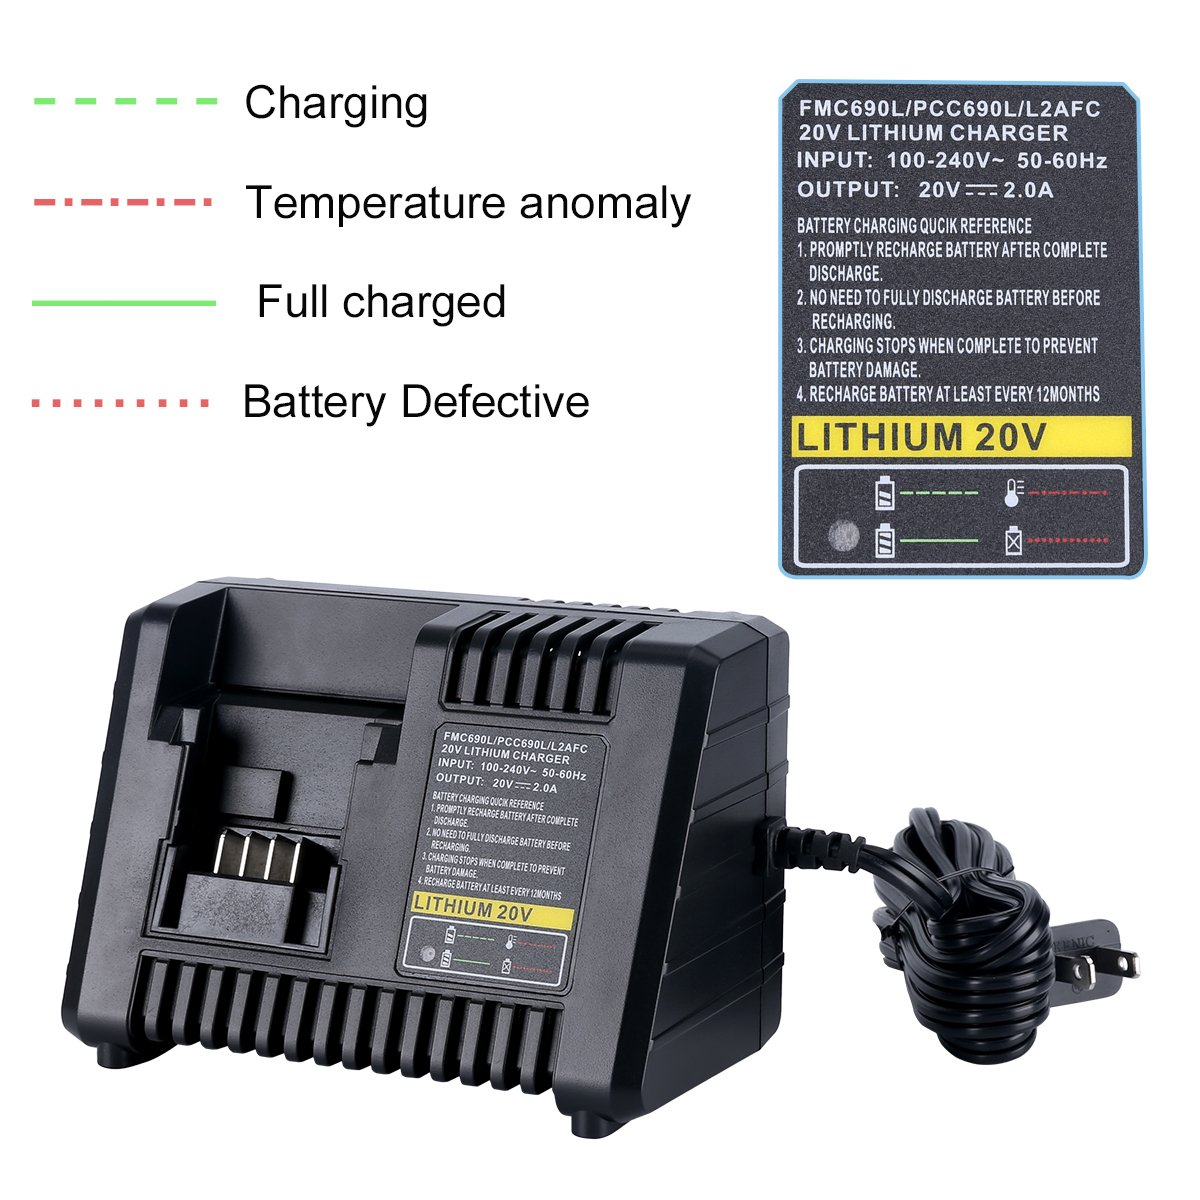 Biswaye 20v Lithium Battery Charger Bdcac202b For Black And Decker Fast Charging Circuit Batterycharger Powersupply Porter Cable Stanley Ion